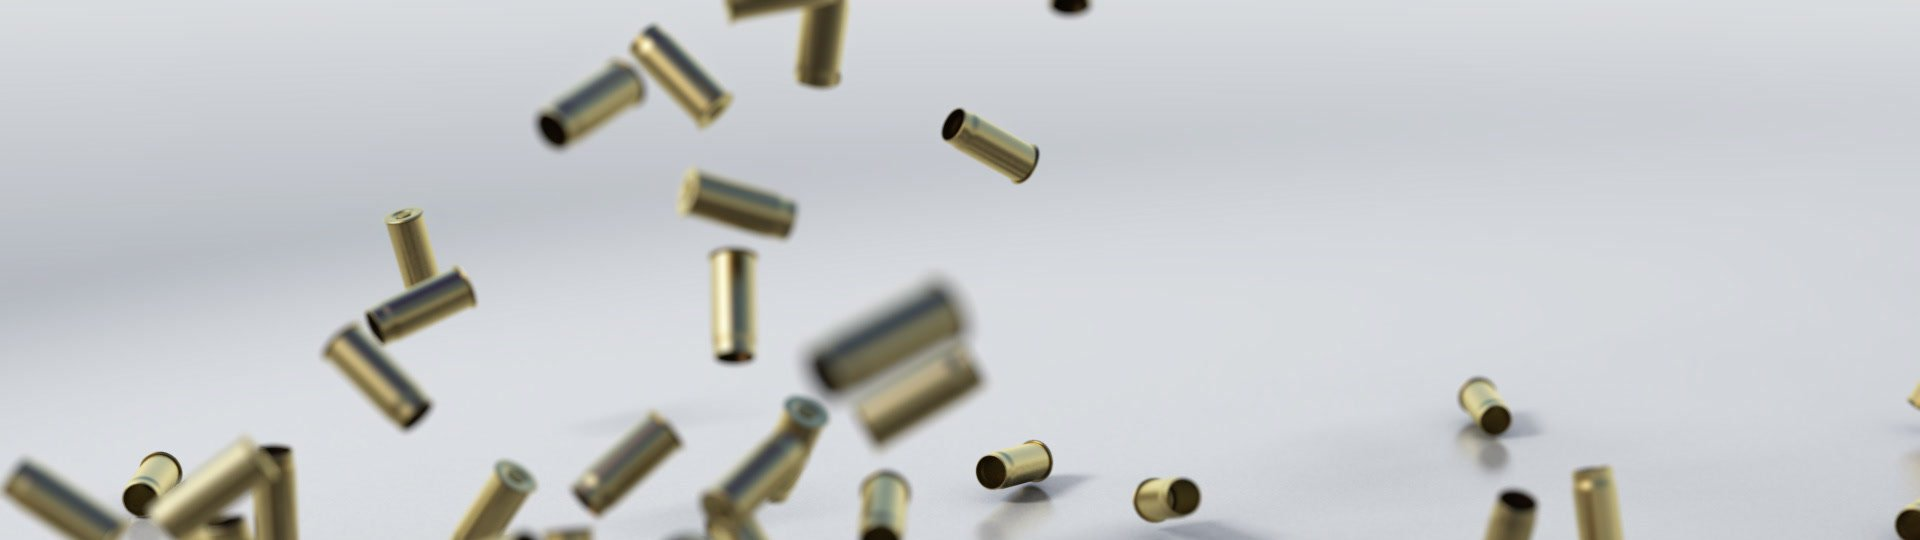 Shells | 3d waterfall of bullet shells - ID:7177